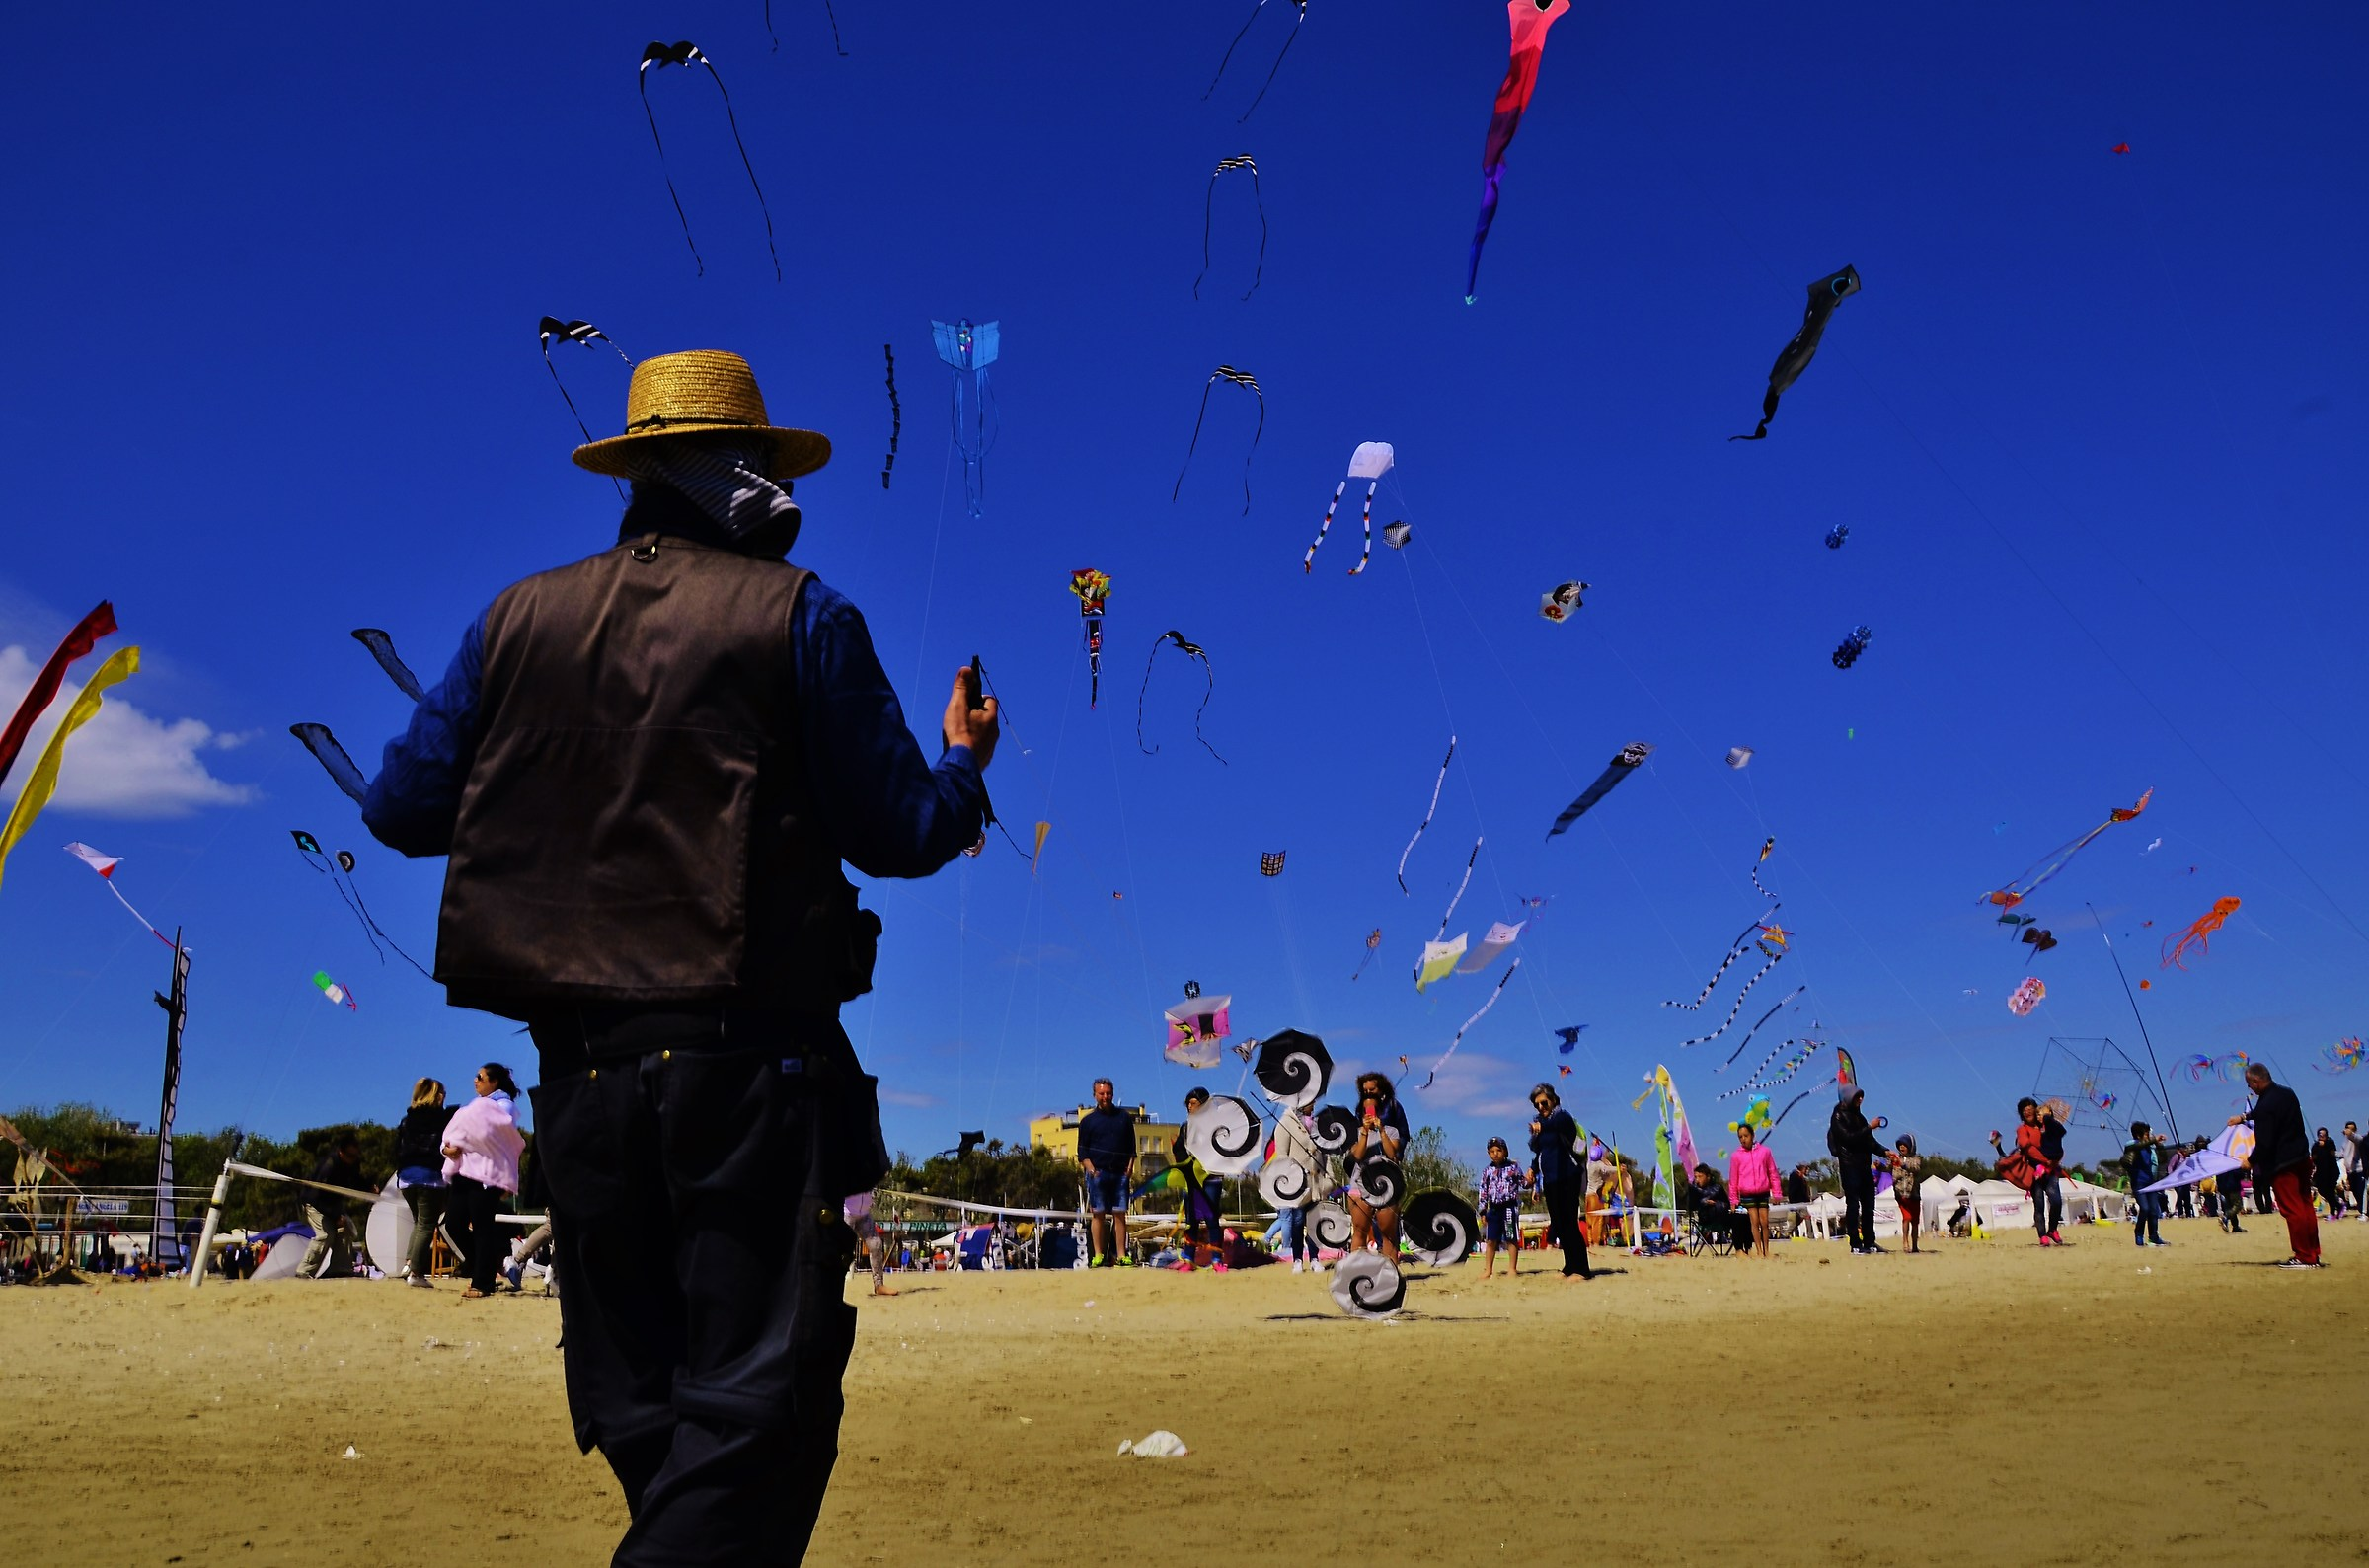 The kings of the kites...